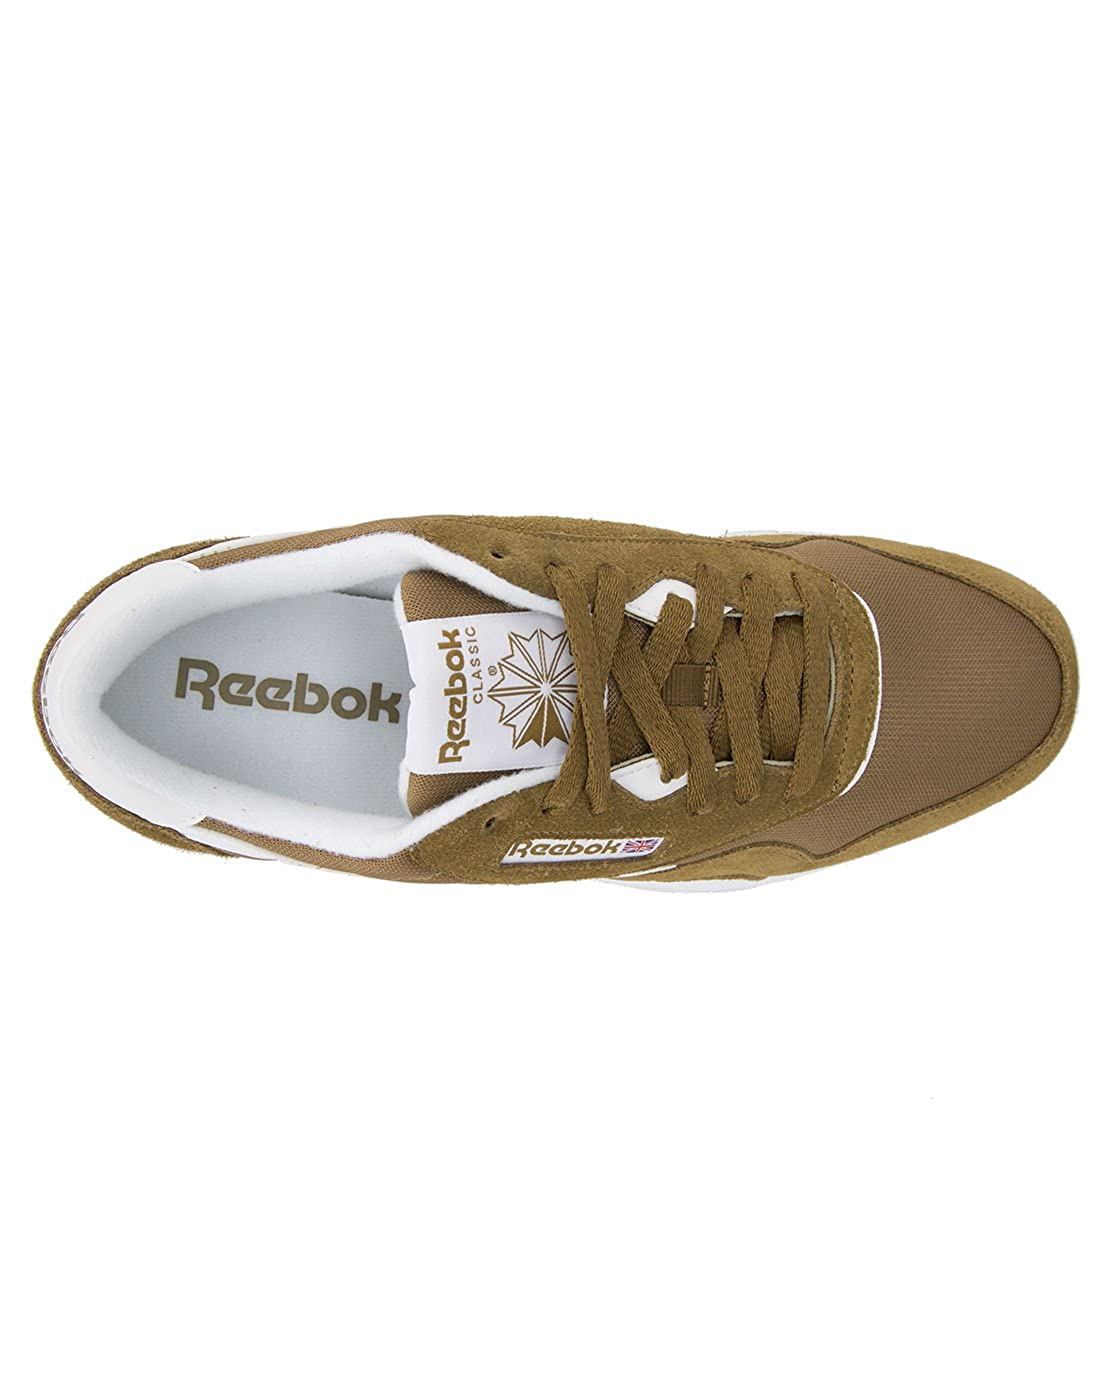 Reebok Buuty Classic Nylon Golden Brown BD2301 Color